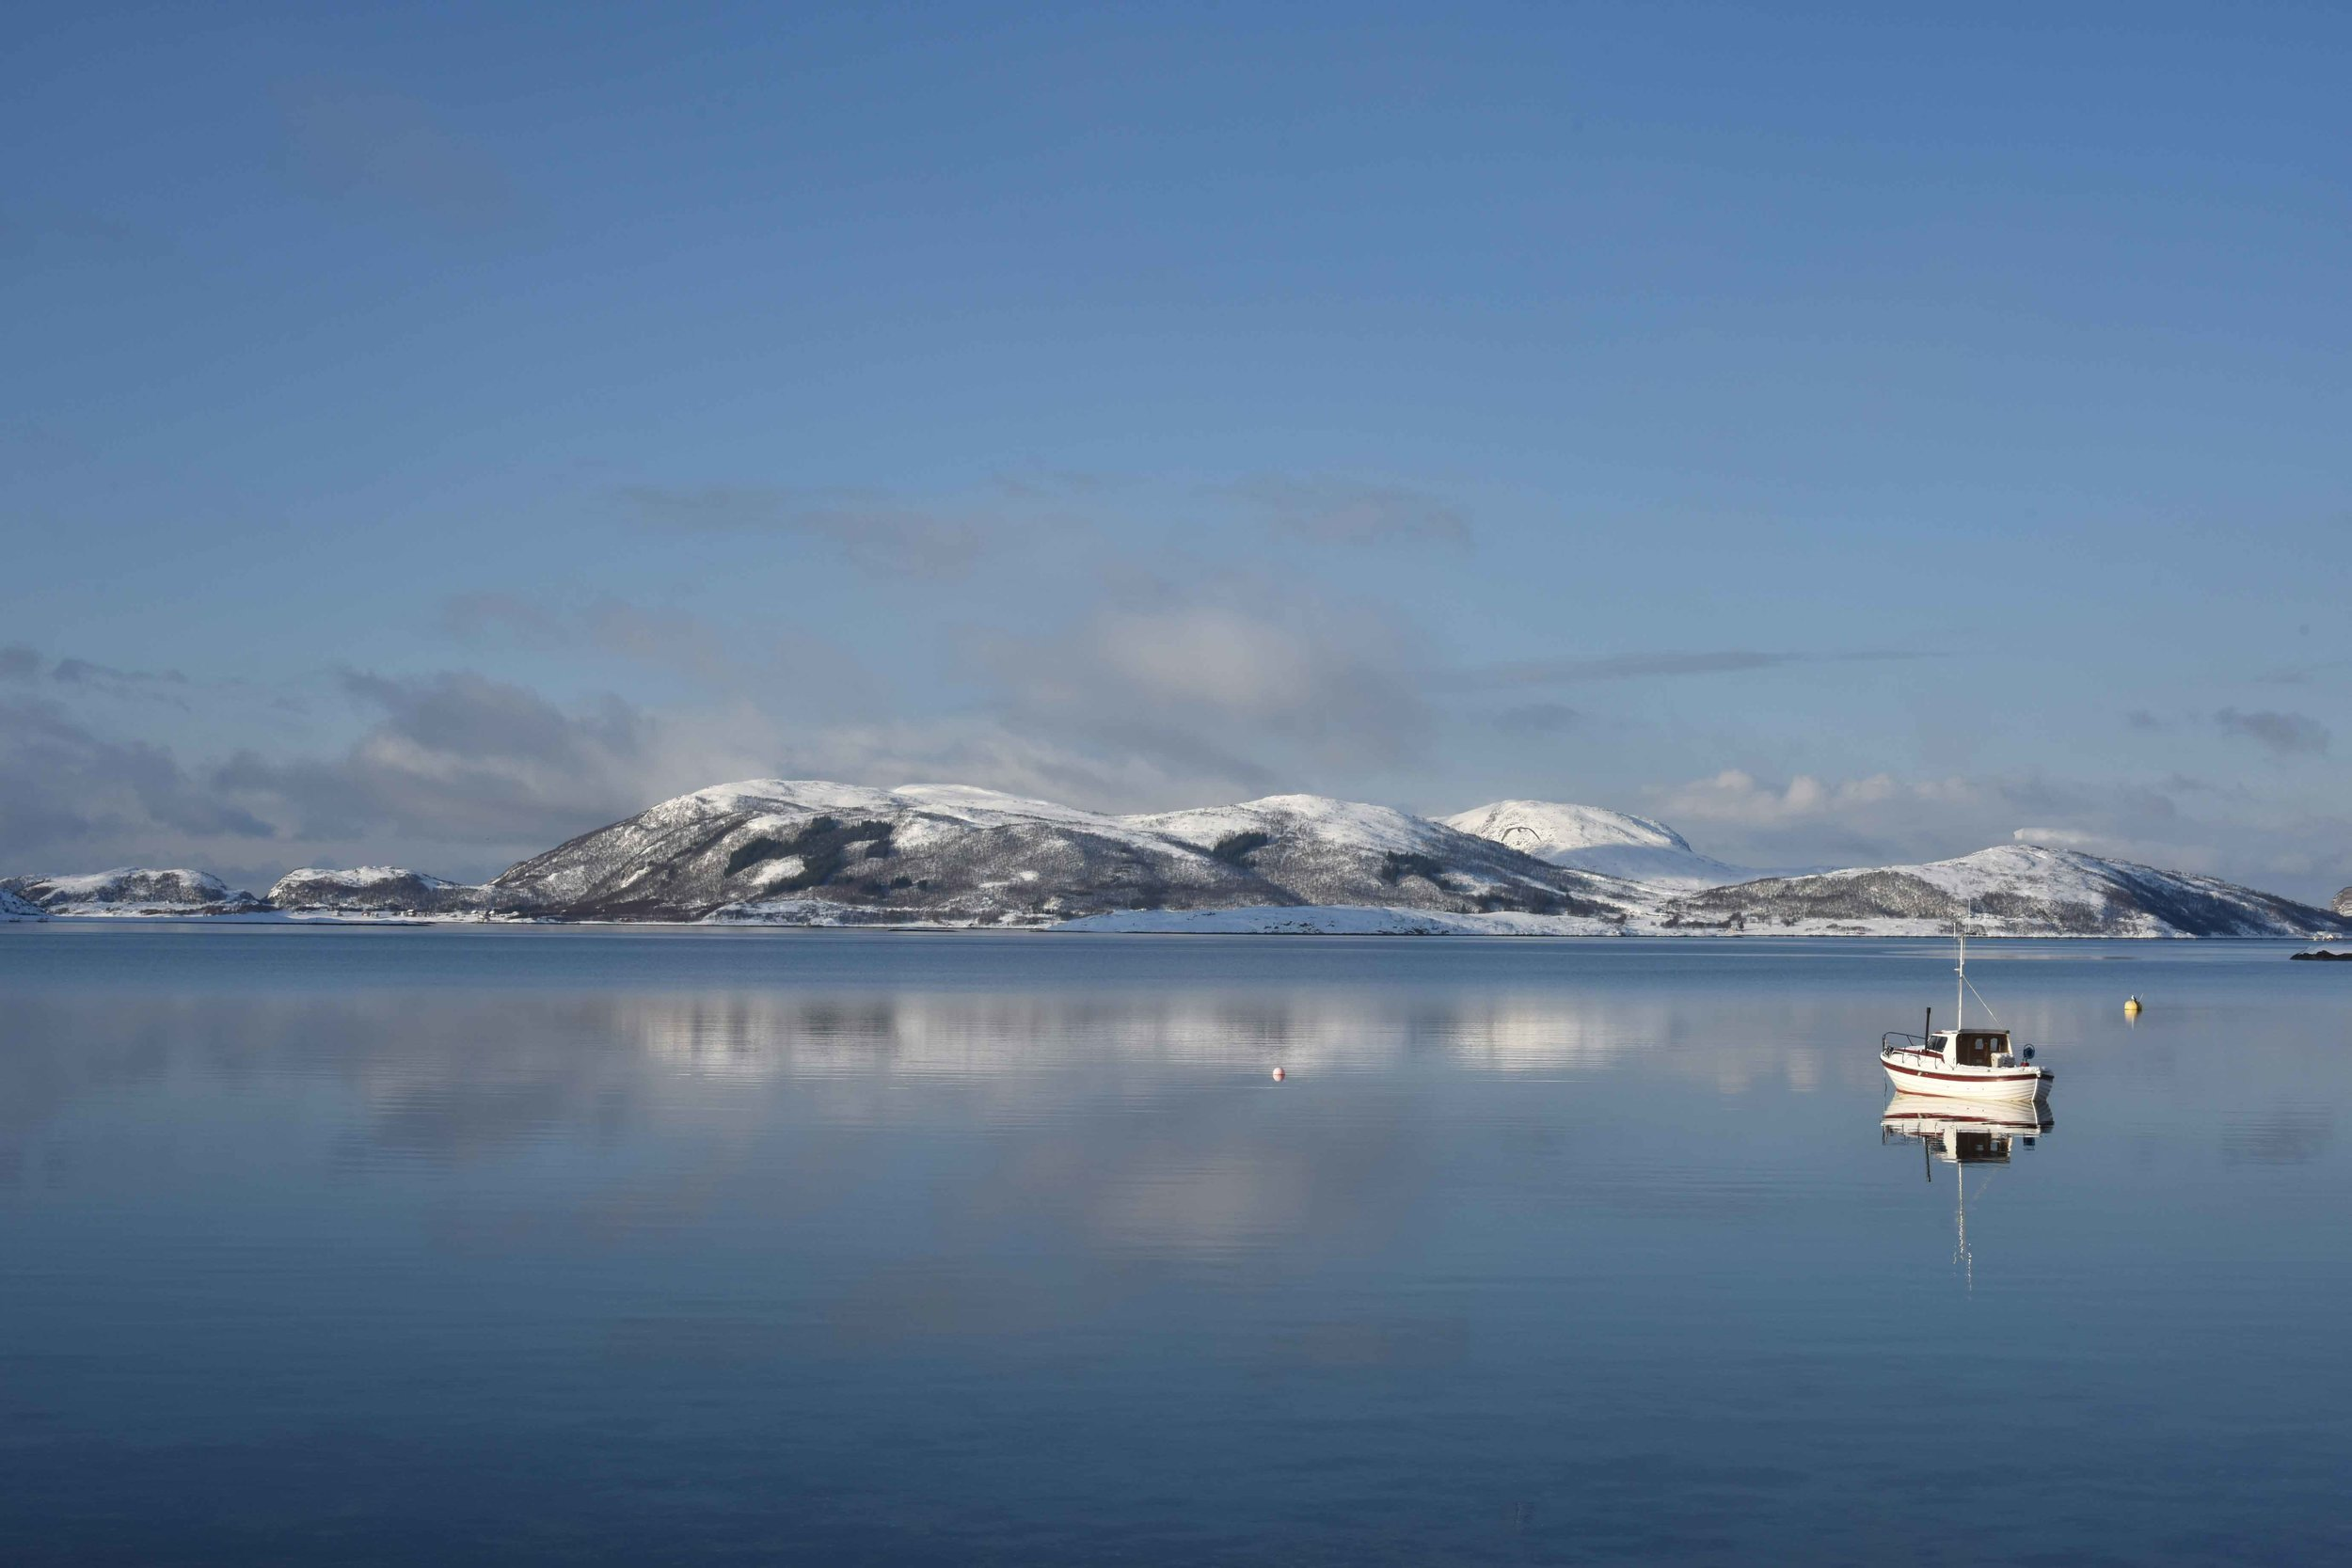 Arctic scenery around Sommarøy, near Tromso, Norway. Image©thingstodot.com